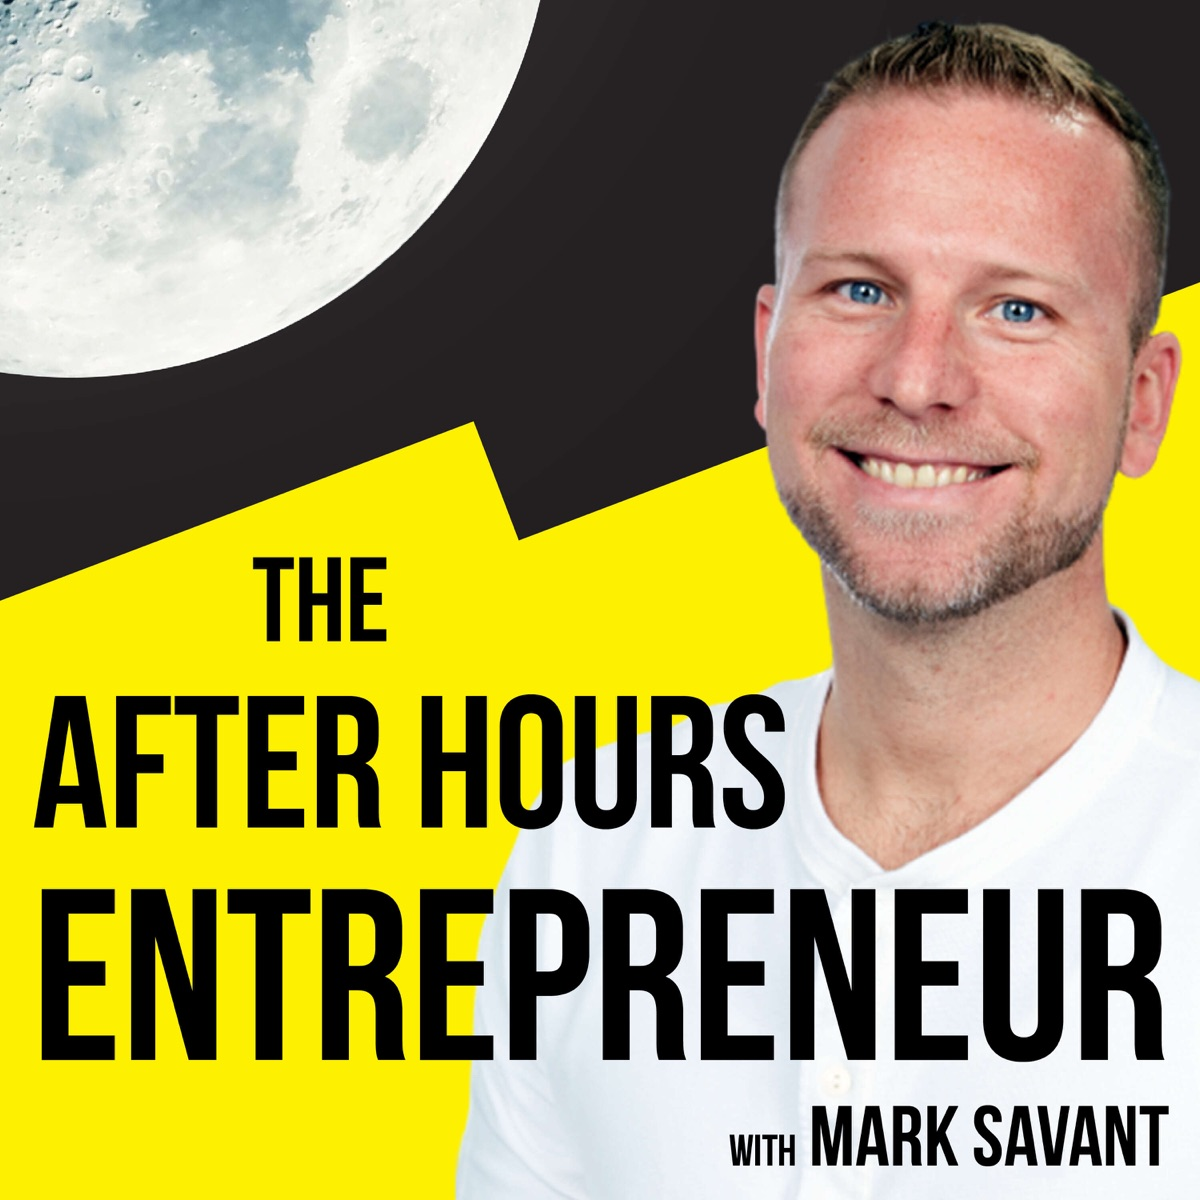 The After Hours Entrepreneur with Mark Savant